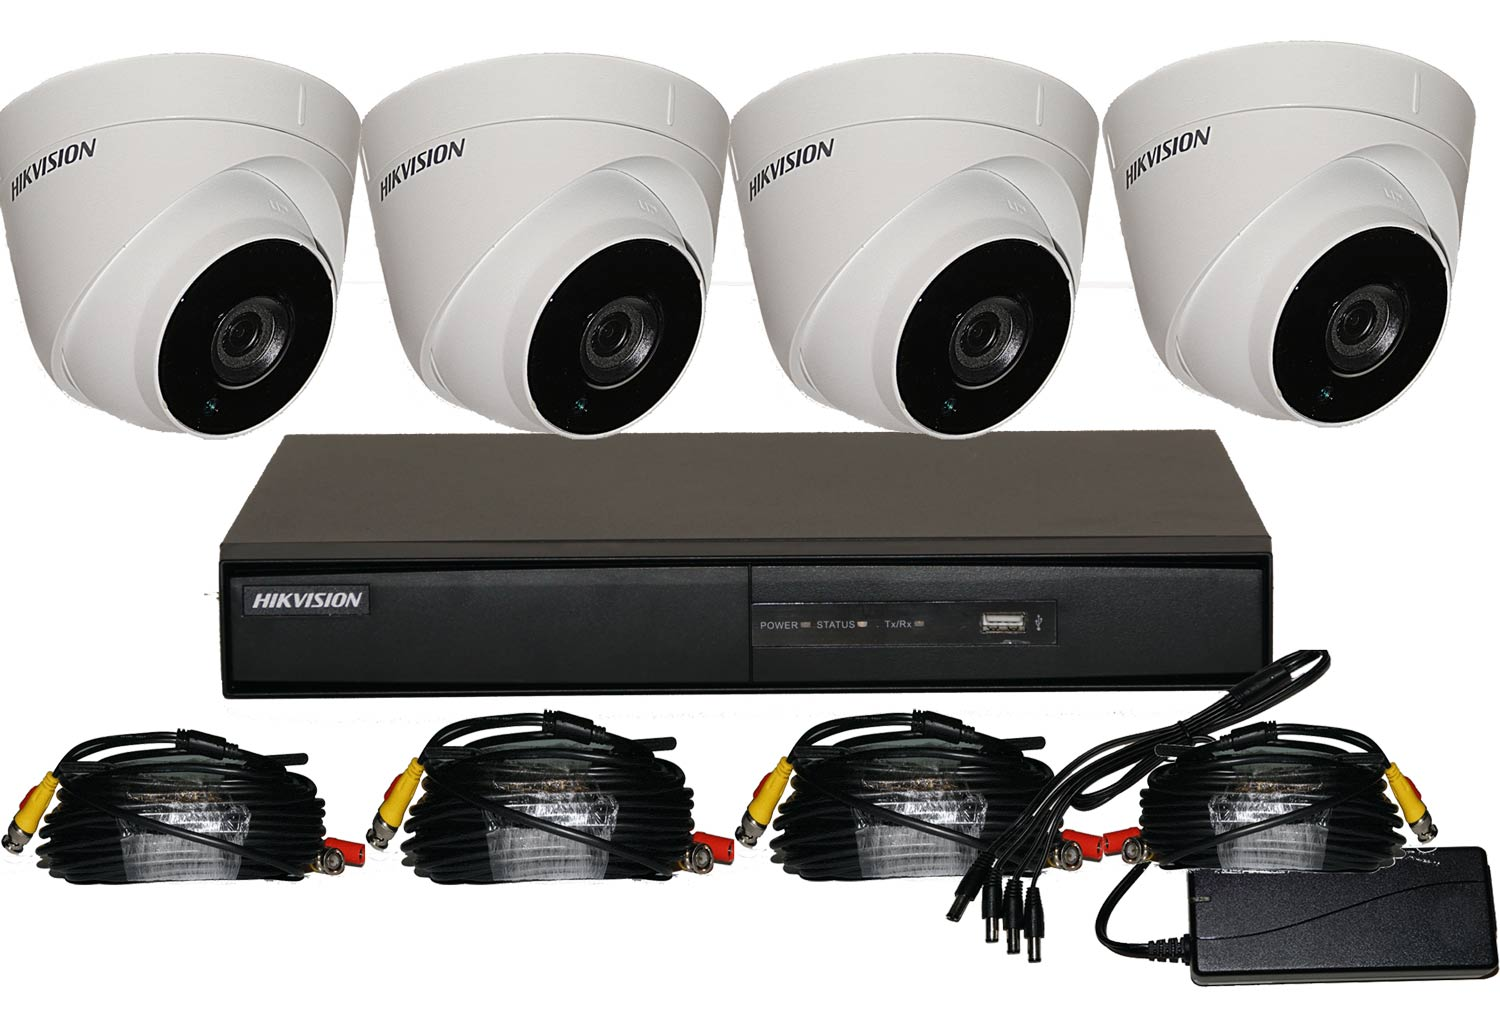 HIKVision High Definition CCTV Kit